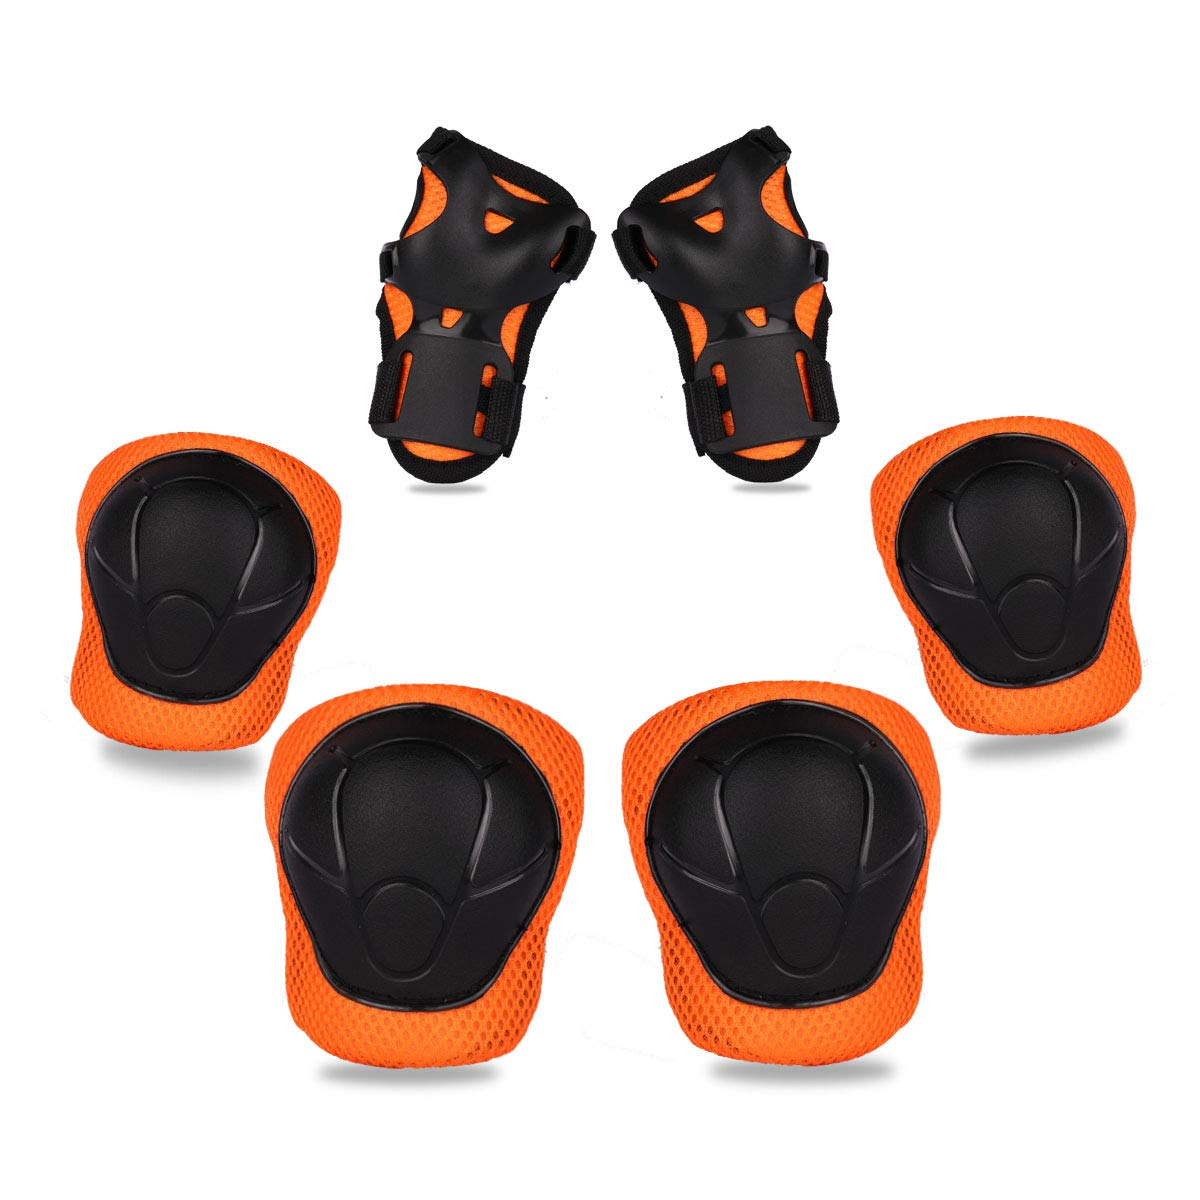 eNilecor Kid\'s Knee Pads Elbow Pads Wrist Guards for Skateboarding Cycling Inline Skating Roller Blading Protective Gear Pack of 6 (Black/Orange)